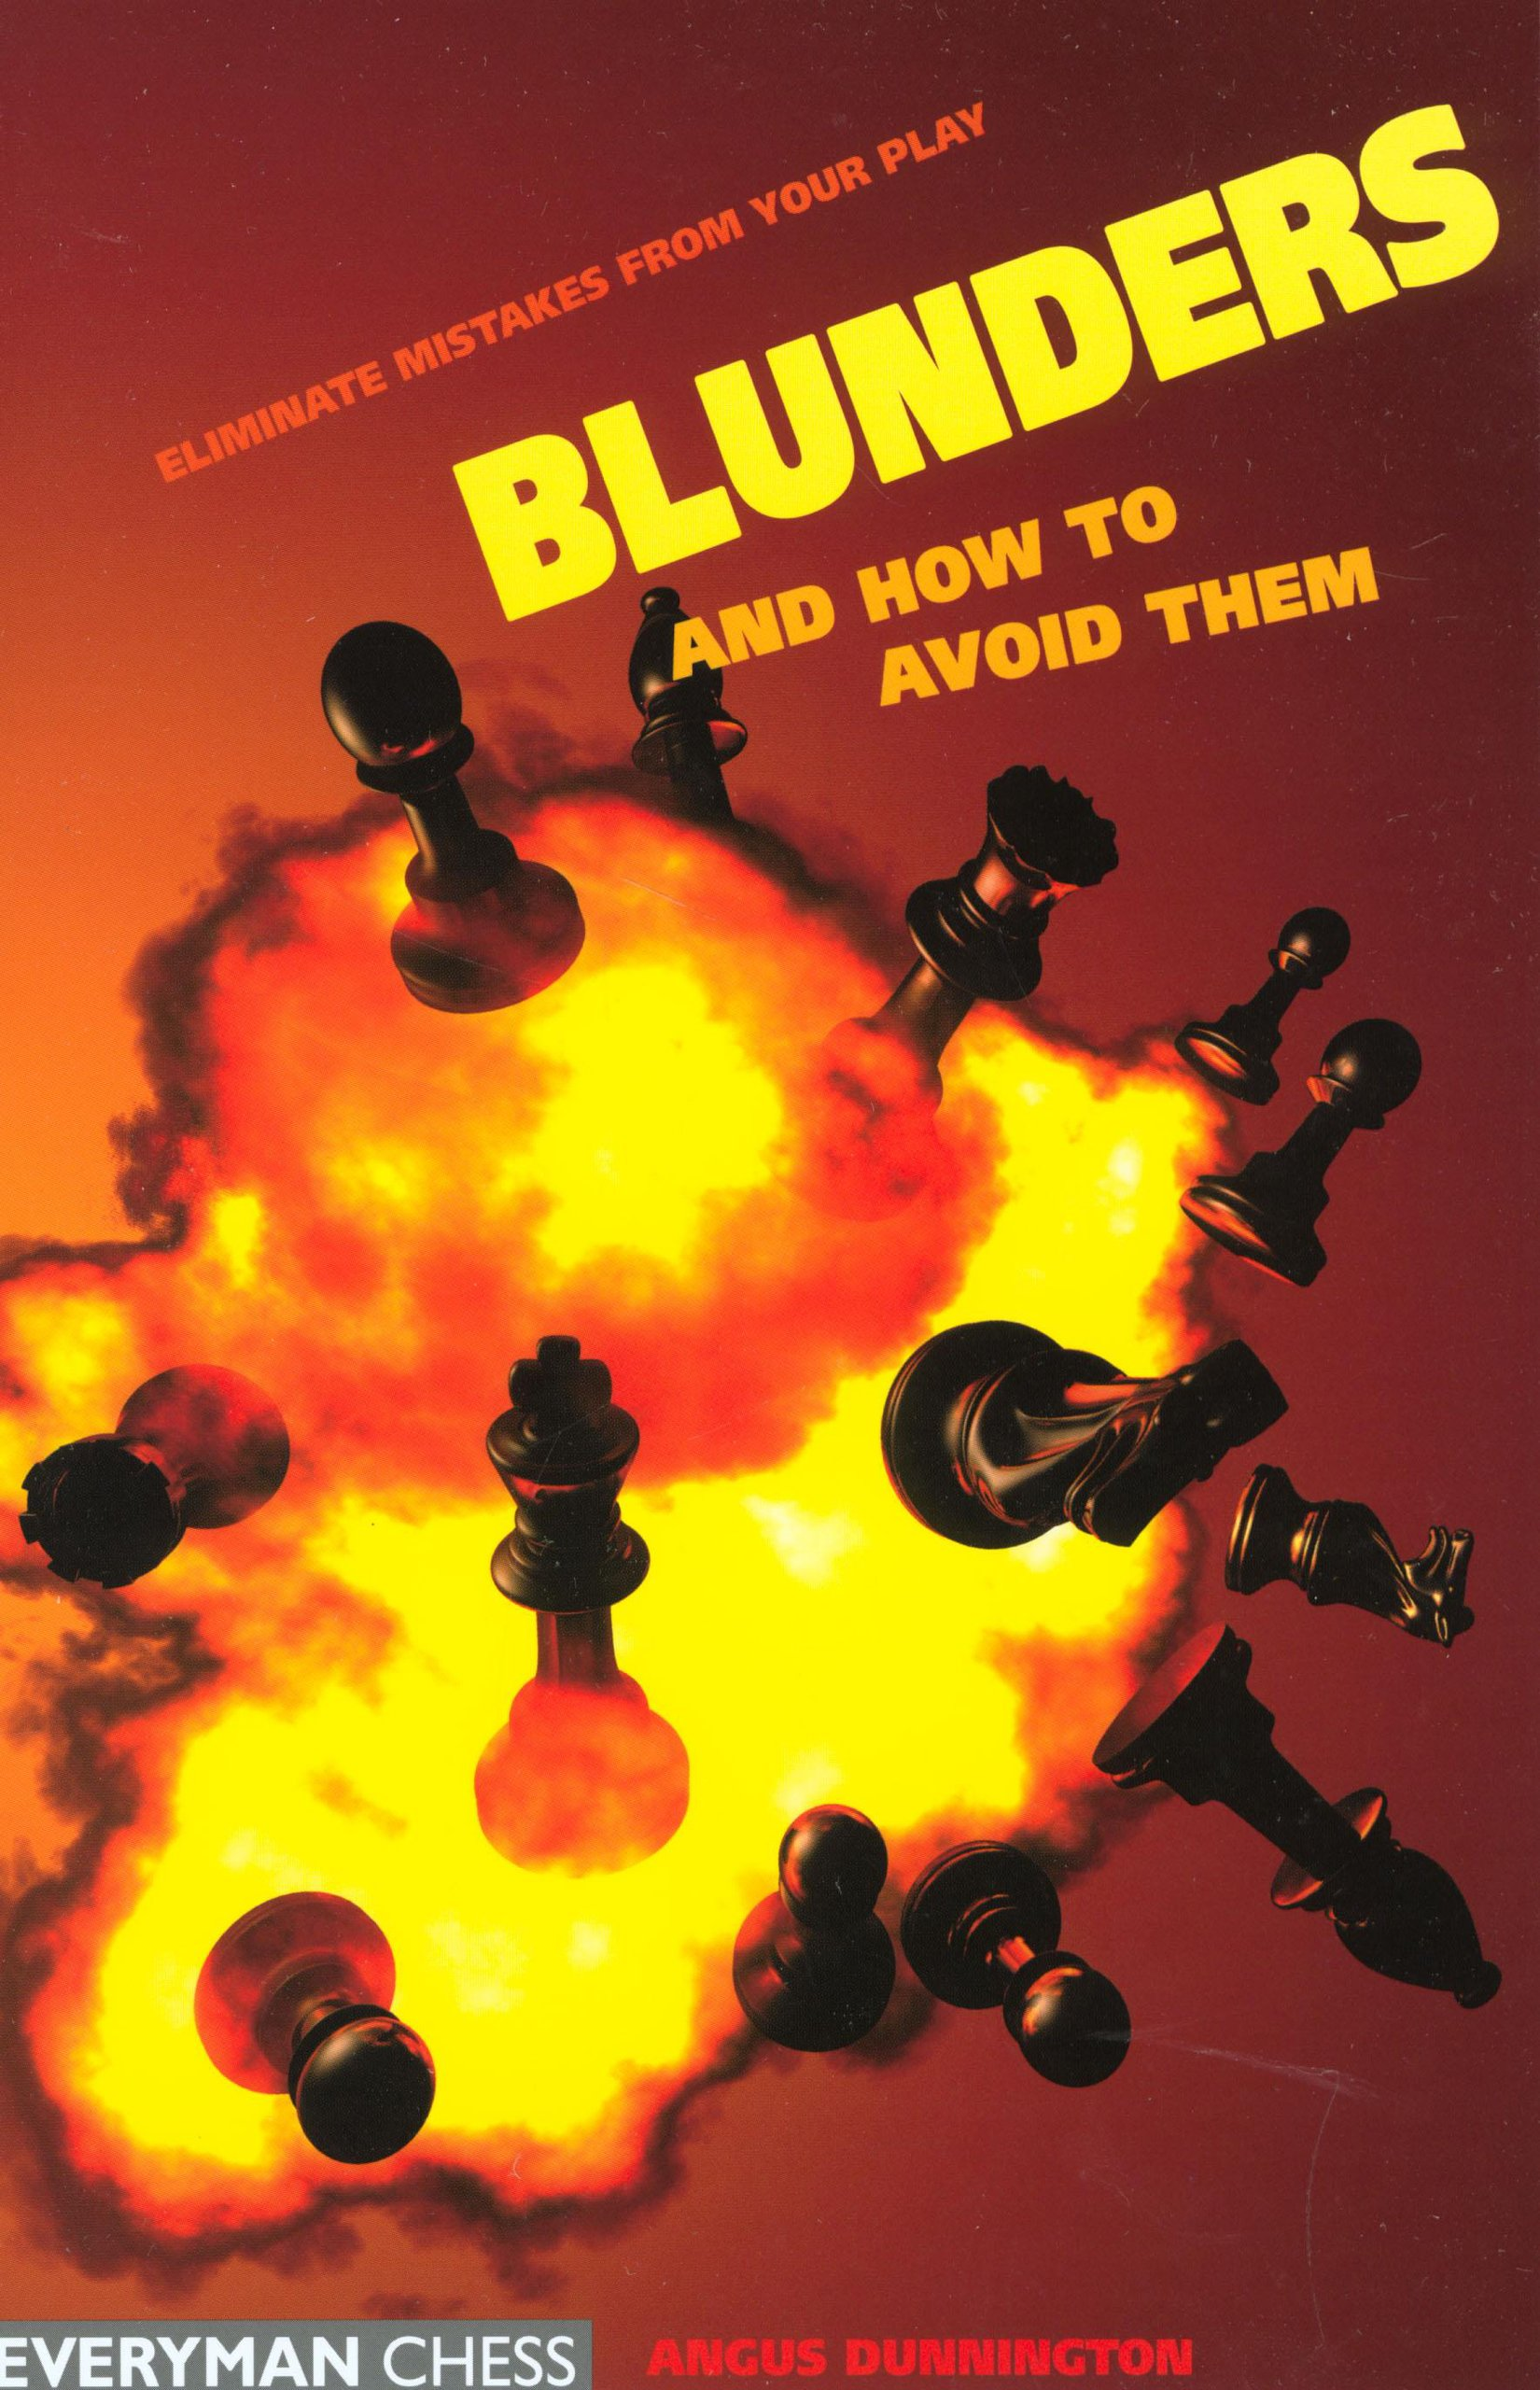 Blunders and How to Avoid Them, 2004